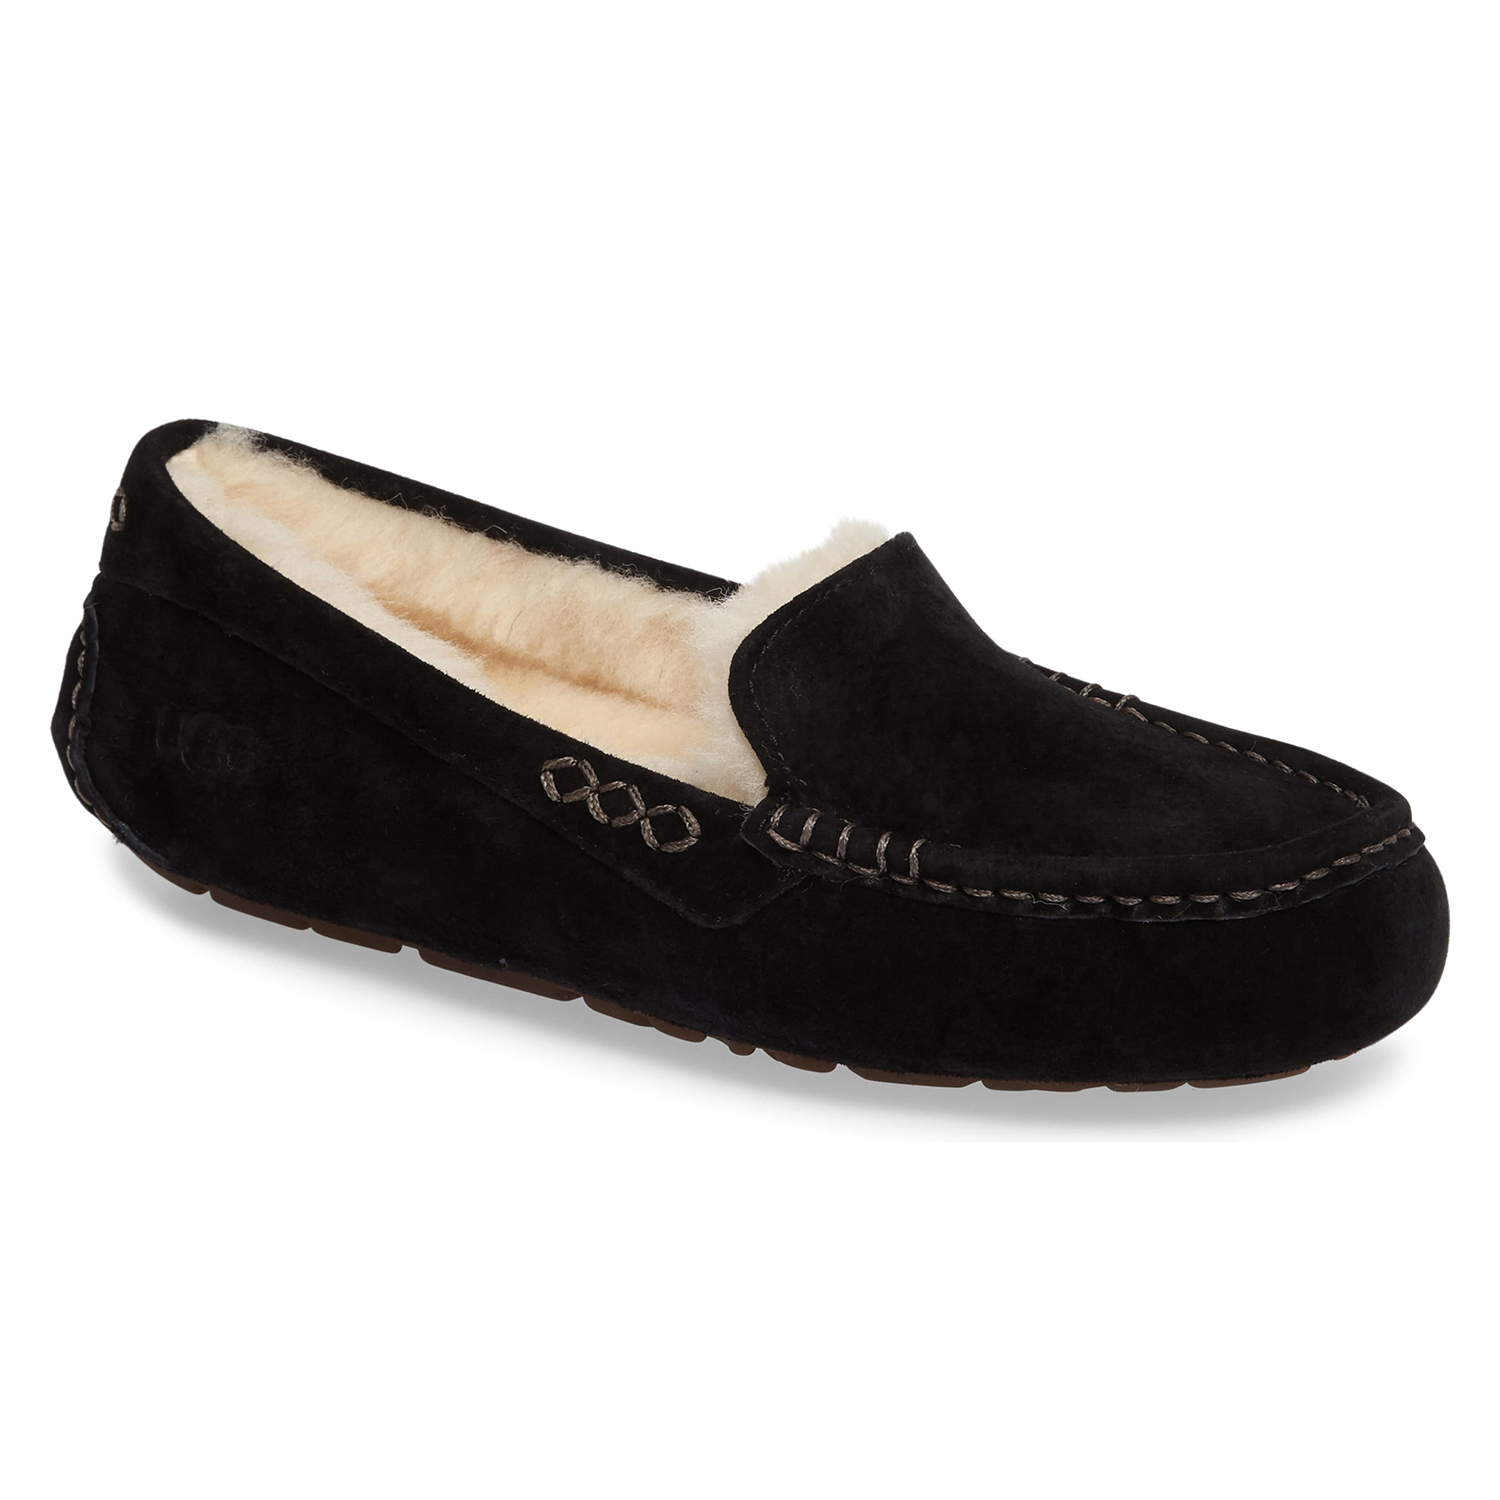 Ugg Ansley Water Resistant Slipper Black